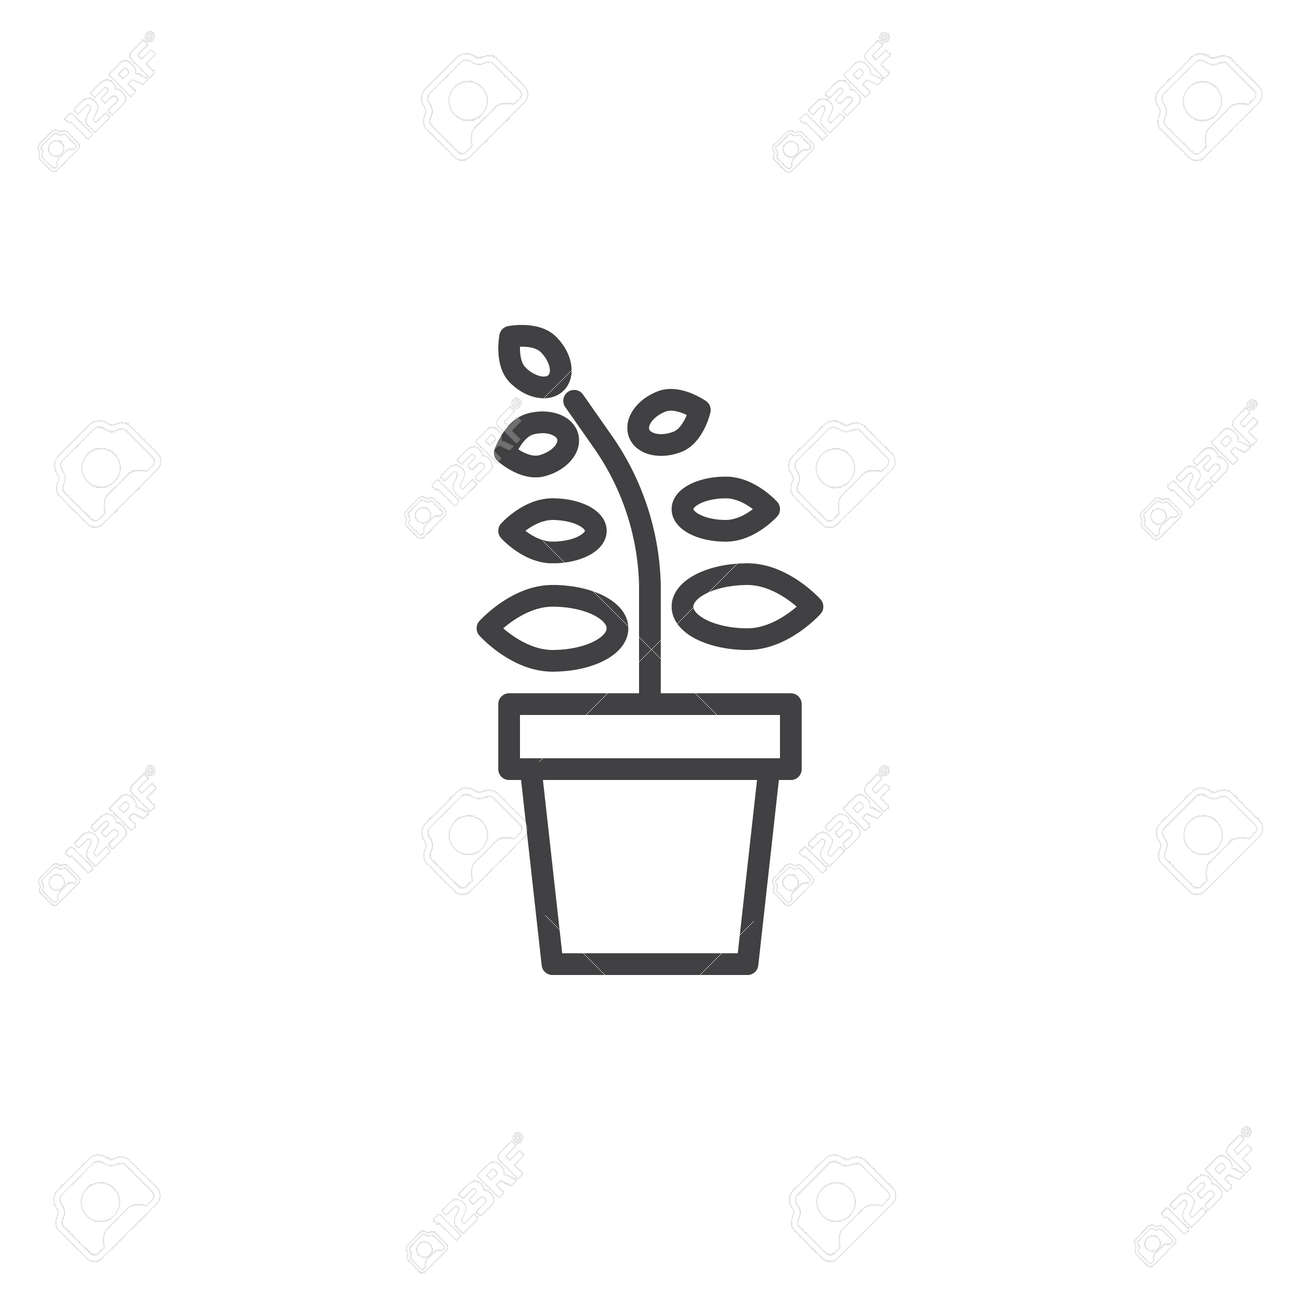 Plant in flower pot line icon outline vector sign linear style pictogram isolated on  sc 1 st  123RF.com & Plant In Flower Pot Line Icon Outline Vector Sign Linear Style ...